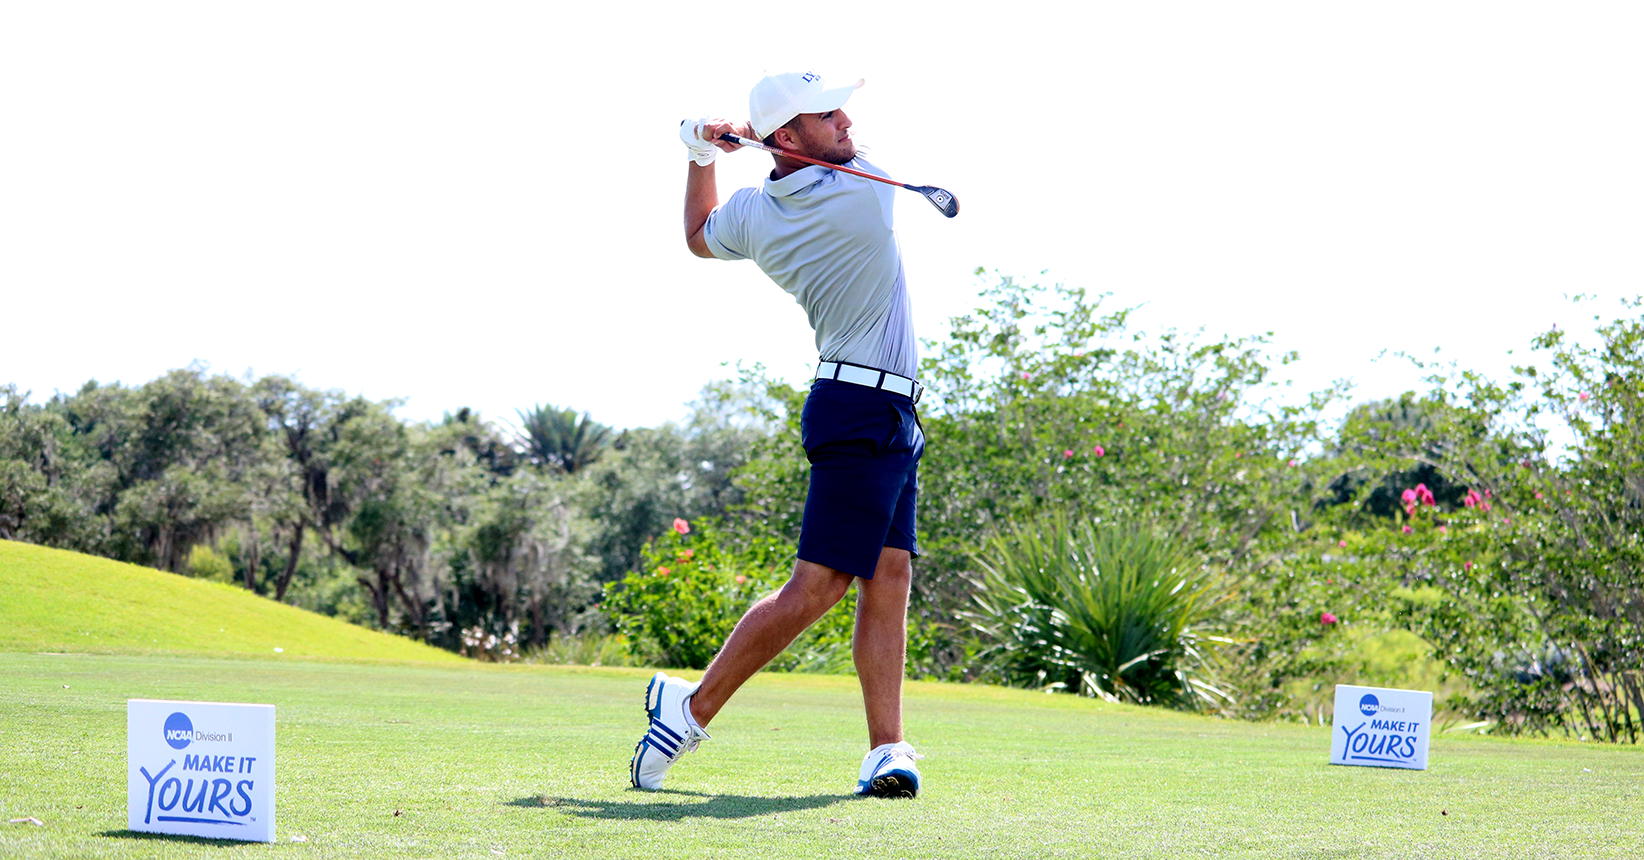 Cancino Leads Men's Golf at NCAA National Championship